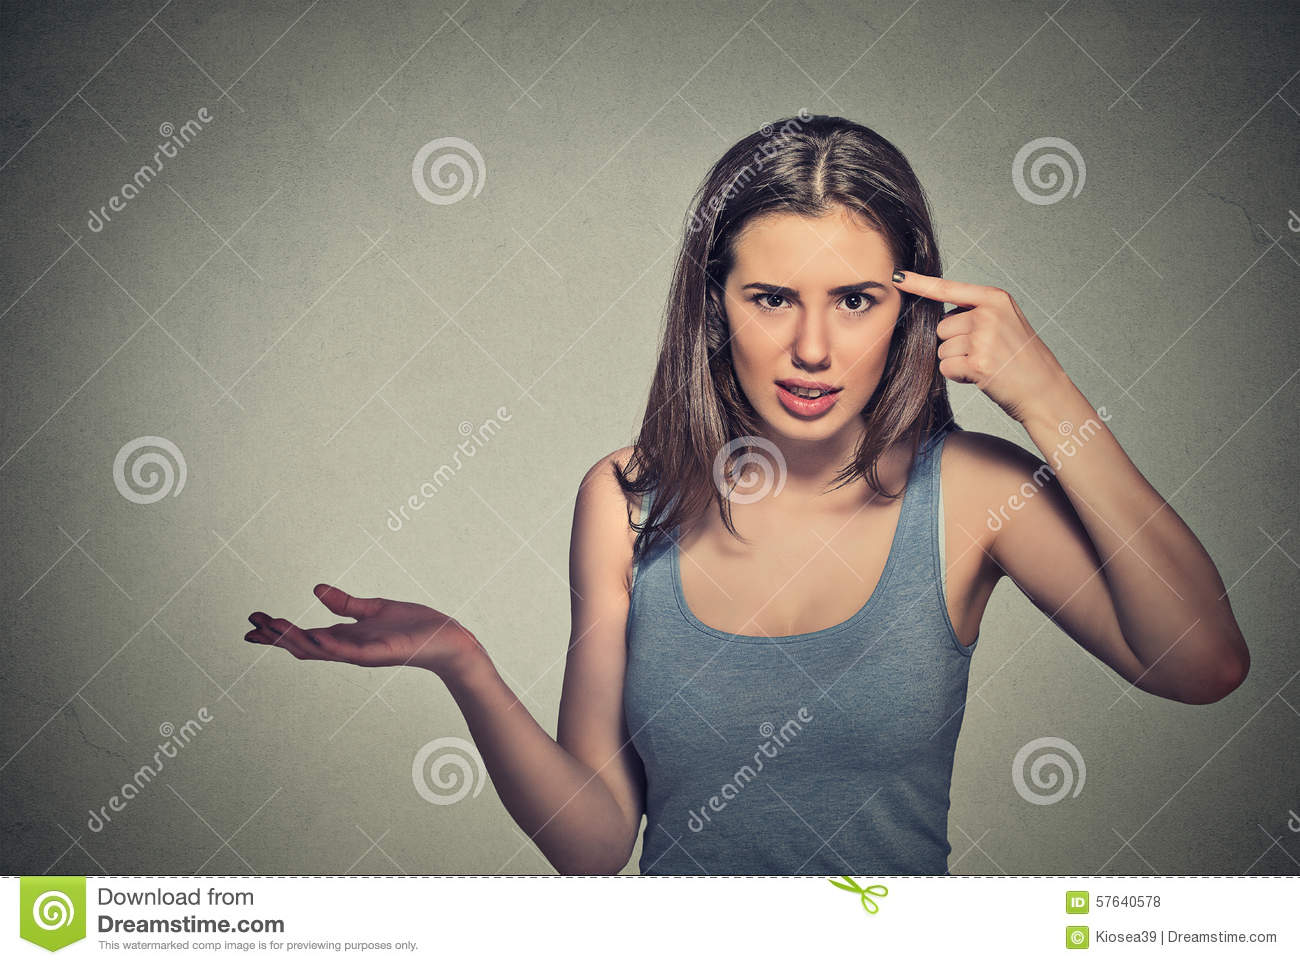 Angry young woman gesturing asking are you crazy?